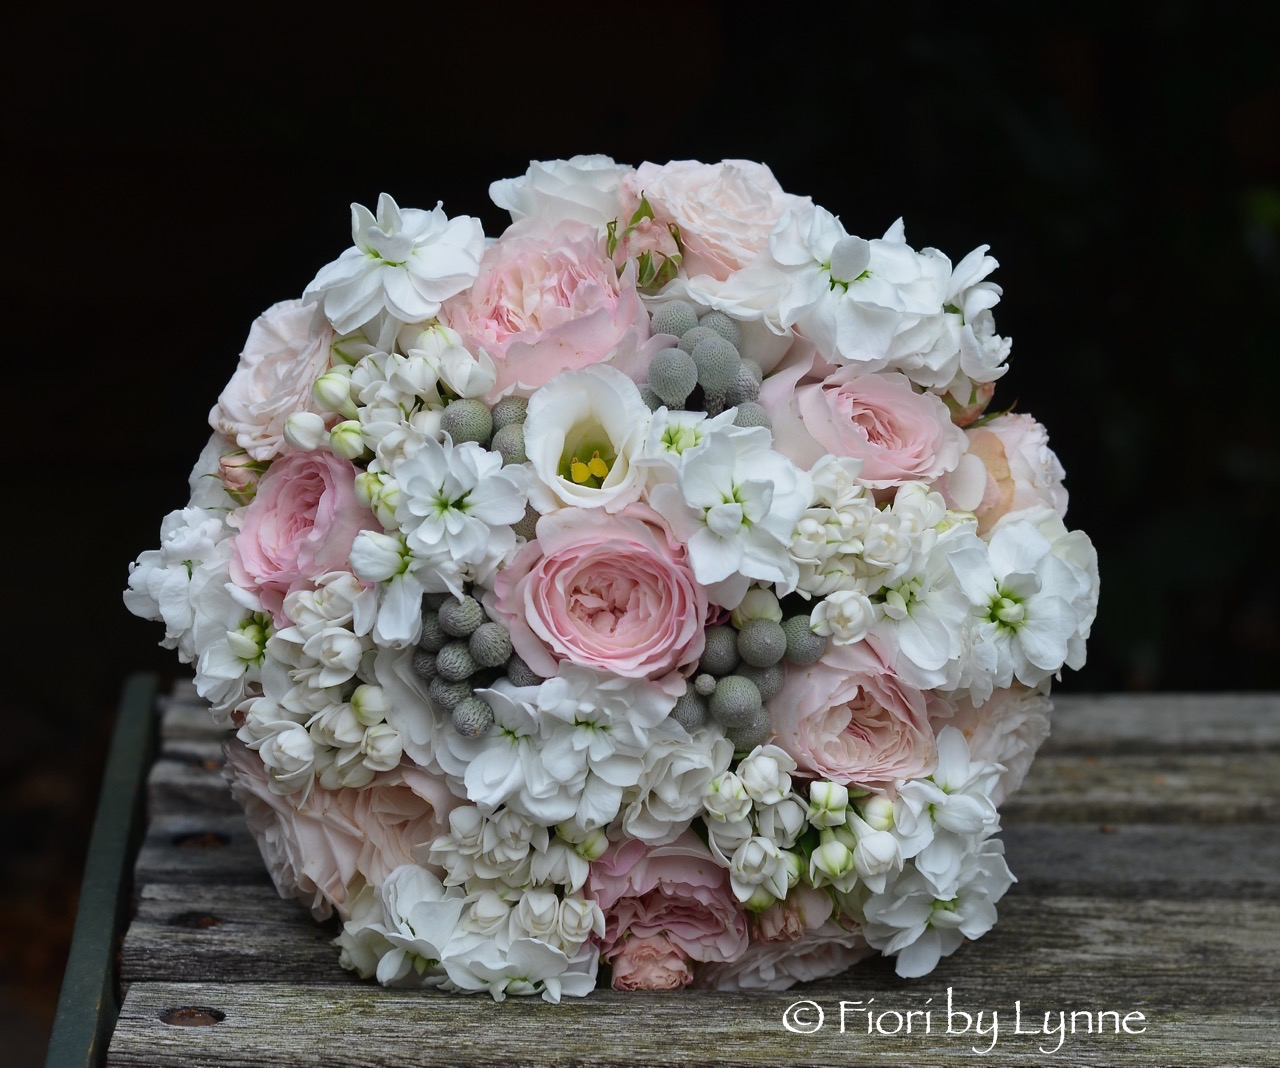 white-blush-silver-bouquet-keira-rose-white-stocksbouvardiabrunnia.jpg